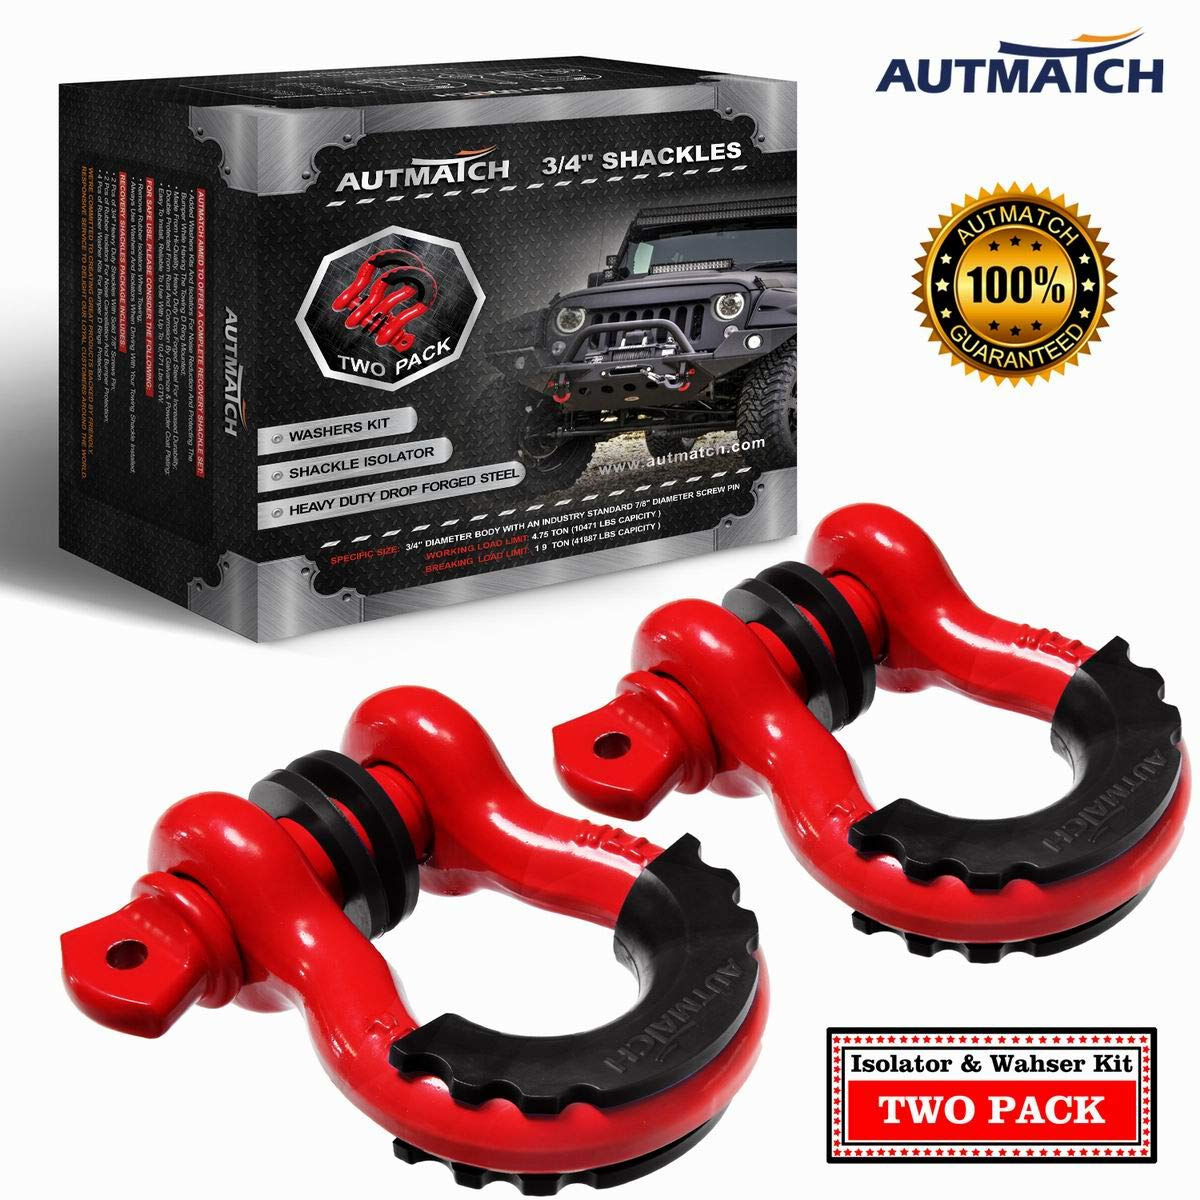 Autmatch Shackles 3/4'' D Ring Shackle (2 Pack) 41,887Ib Break Strength with 7/8'' Screw Pin and Shackle Isolator & Washers Kit for Tow Strap Winch Off Road Towing Accessory Jeep Vehicle Recovery Red